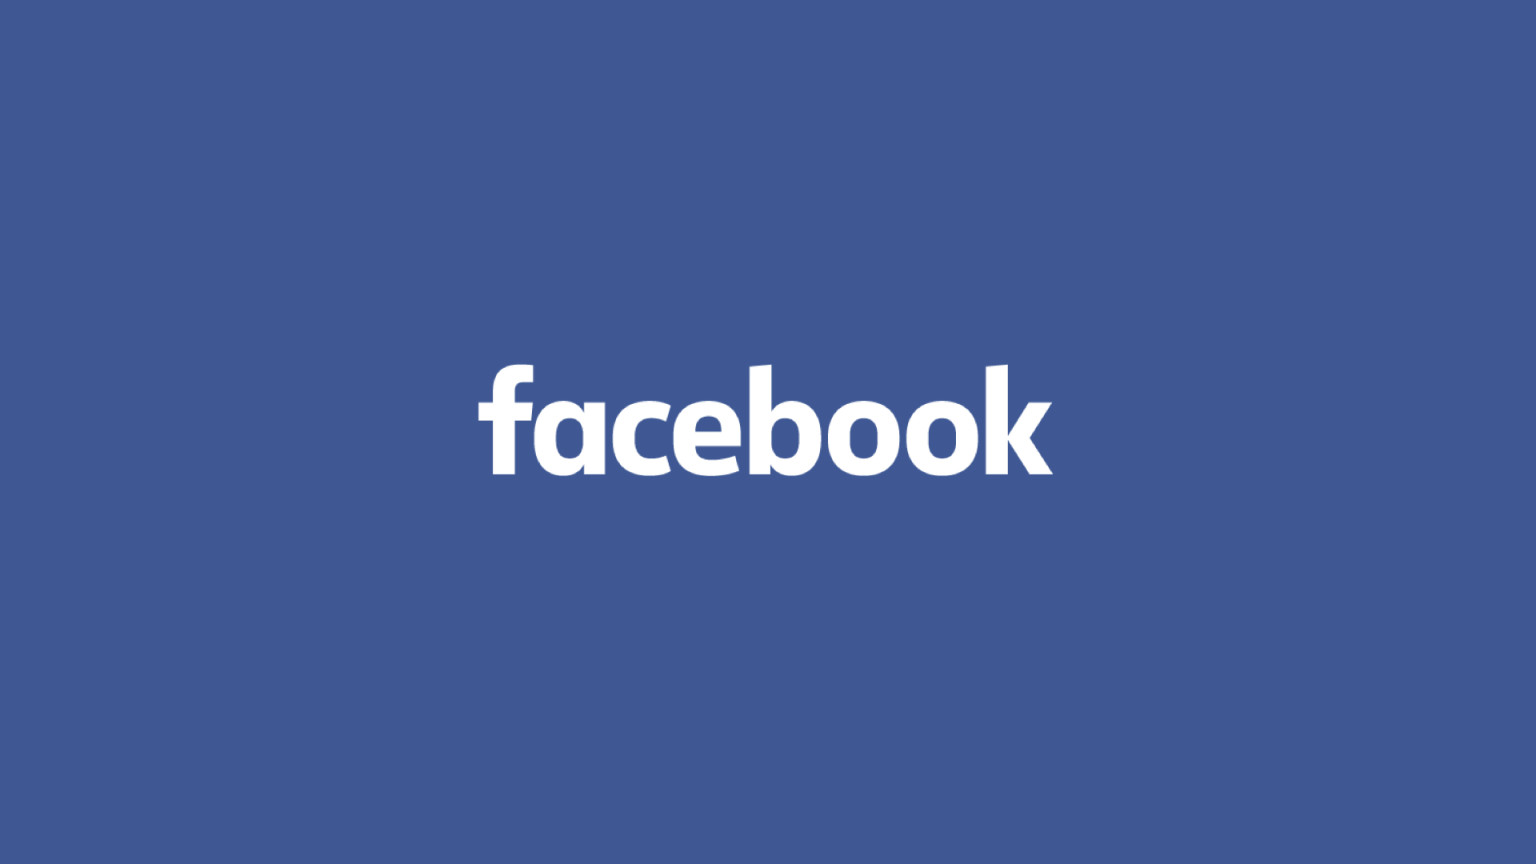 advertise a Facebook community